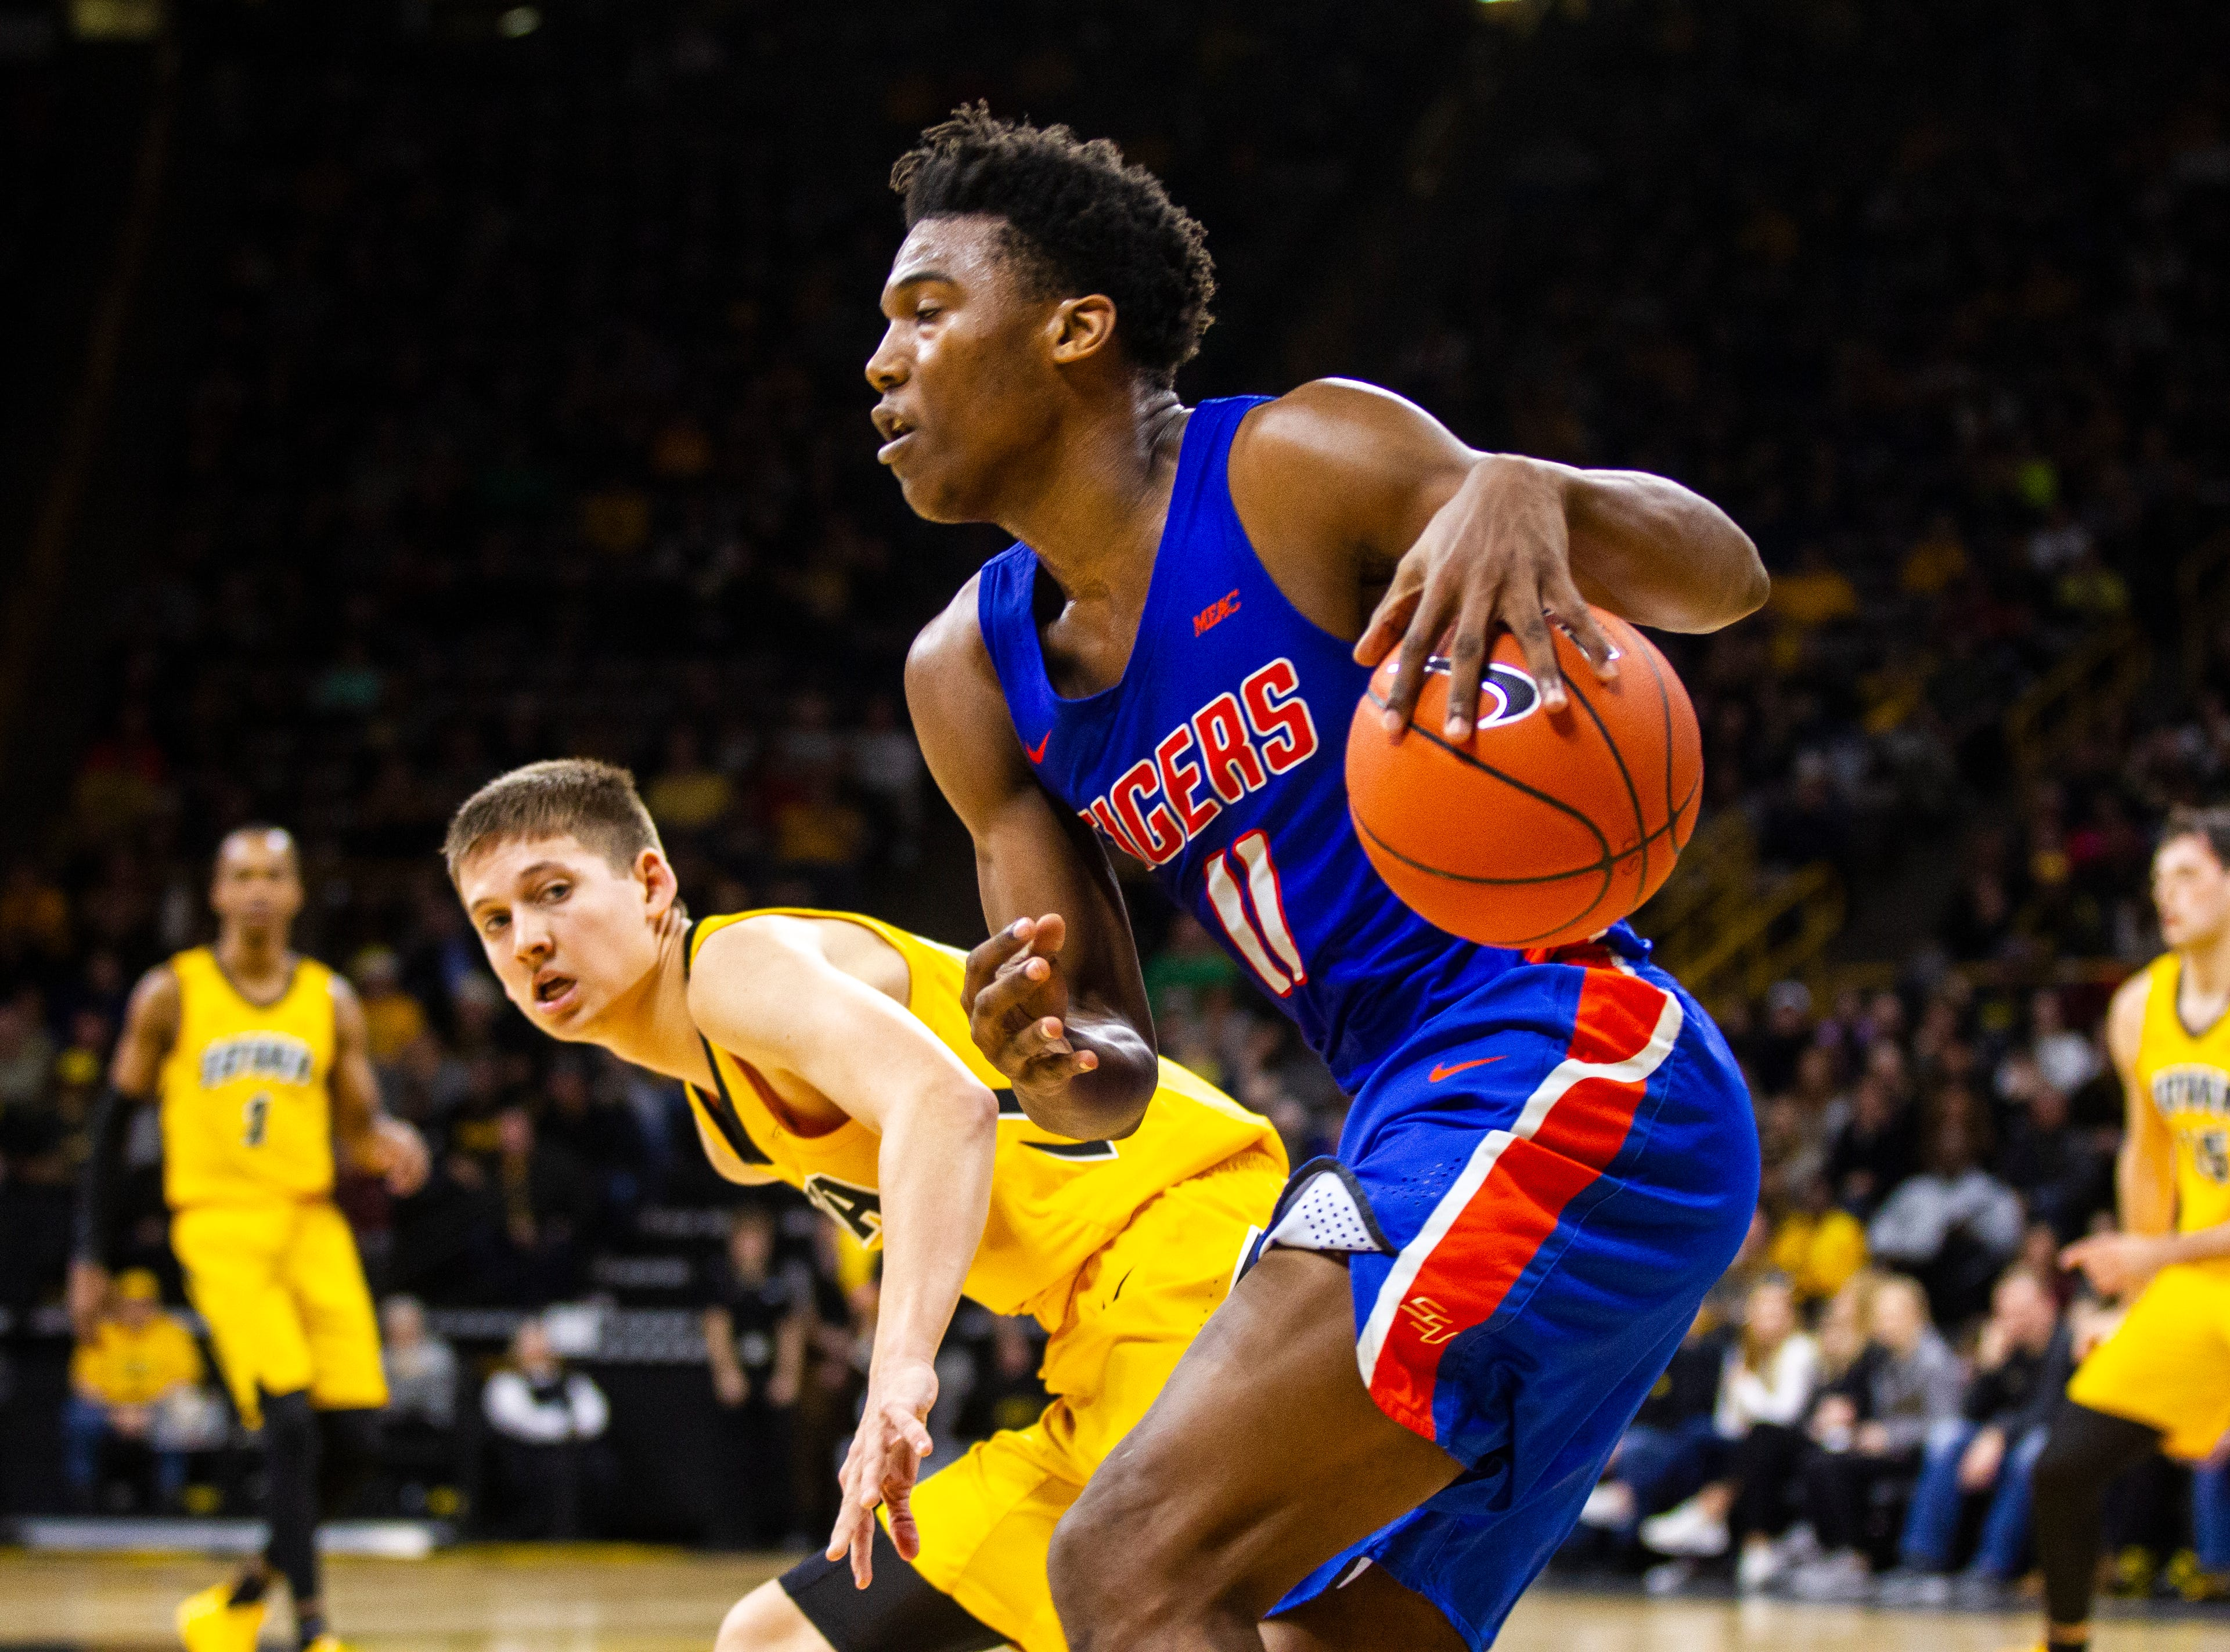 Savannah State guard Jaquan Dotson (11) grabs a rebound during a NCAA men's basketball game on Saturday, Dec. 22, 2018, at Carver-Hawkeye Arena in Iowa City.